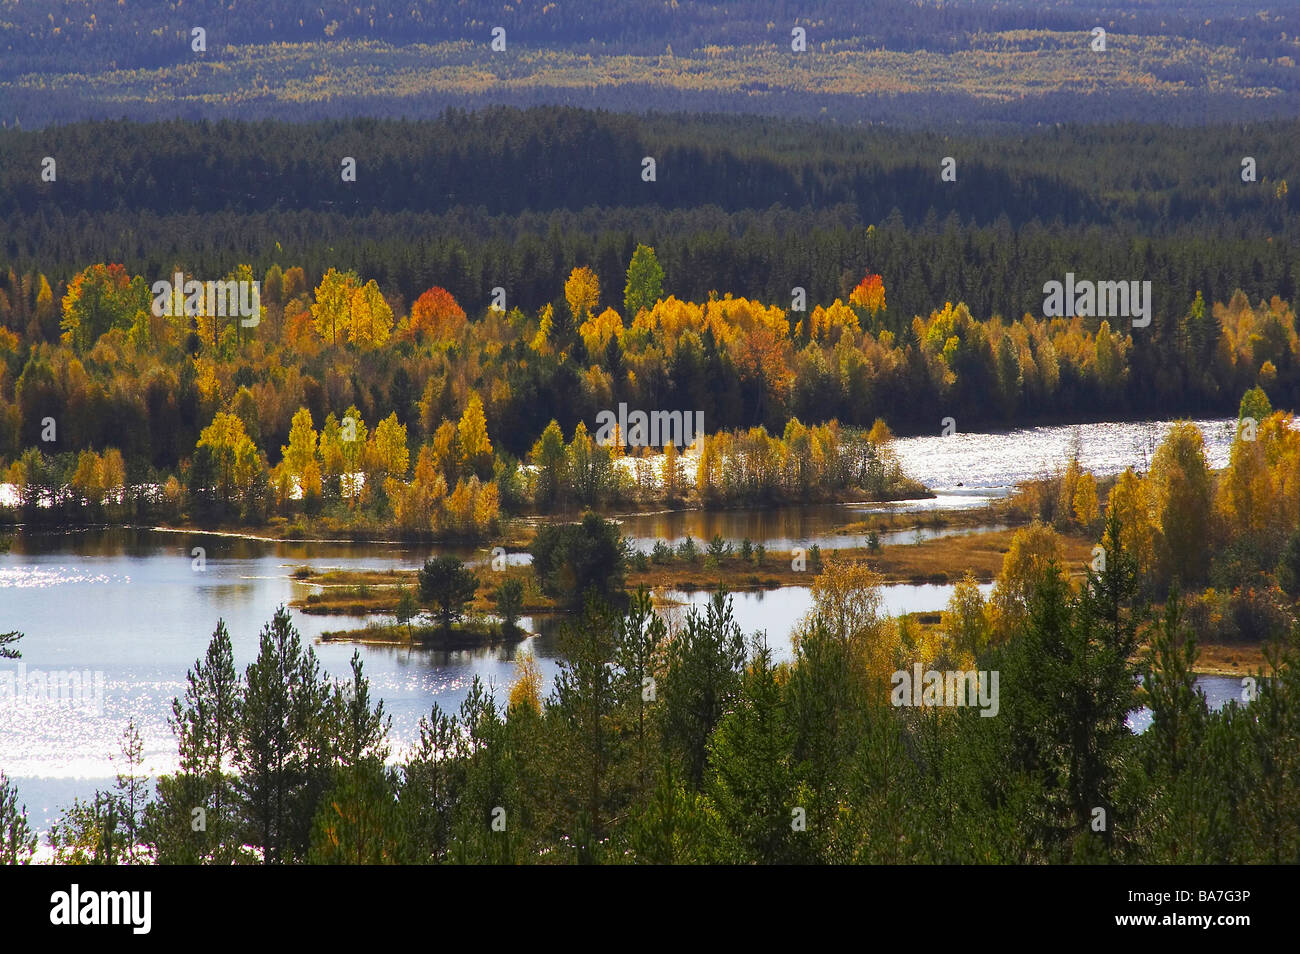 Fall between Mora and Aelvdalen at the Oesterdalaelven, Dalarna, middle Sweden - Stock Image